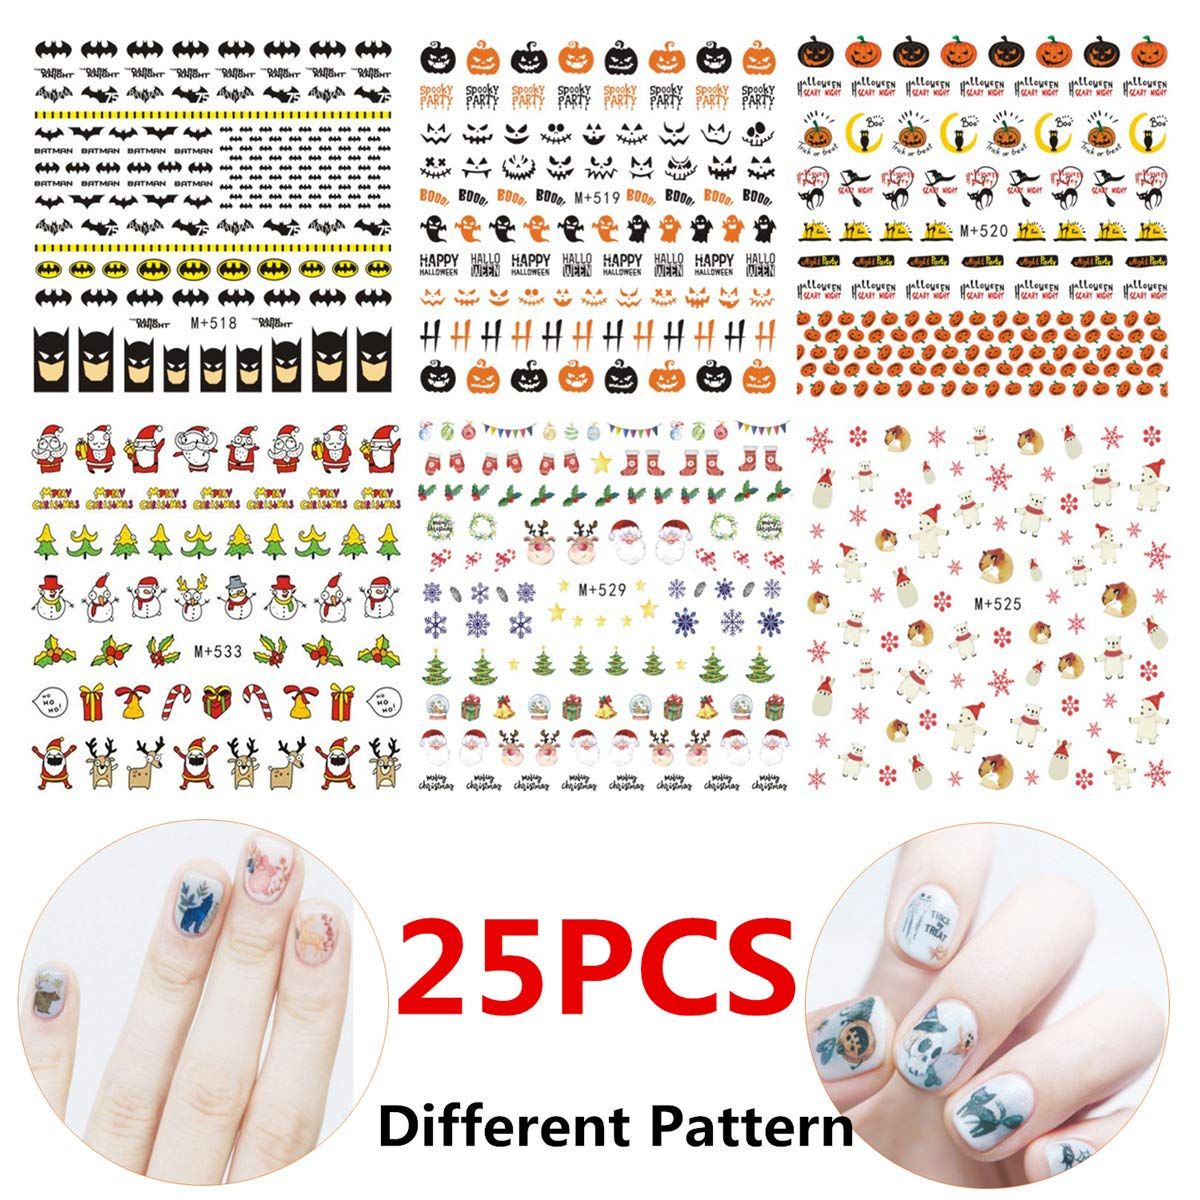 StyleZ 25 Sheets Nail Art Stickers Christmas Halloween Party Multi Different Styles Pattern DIY Nail Art Decals by StyleZ